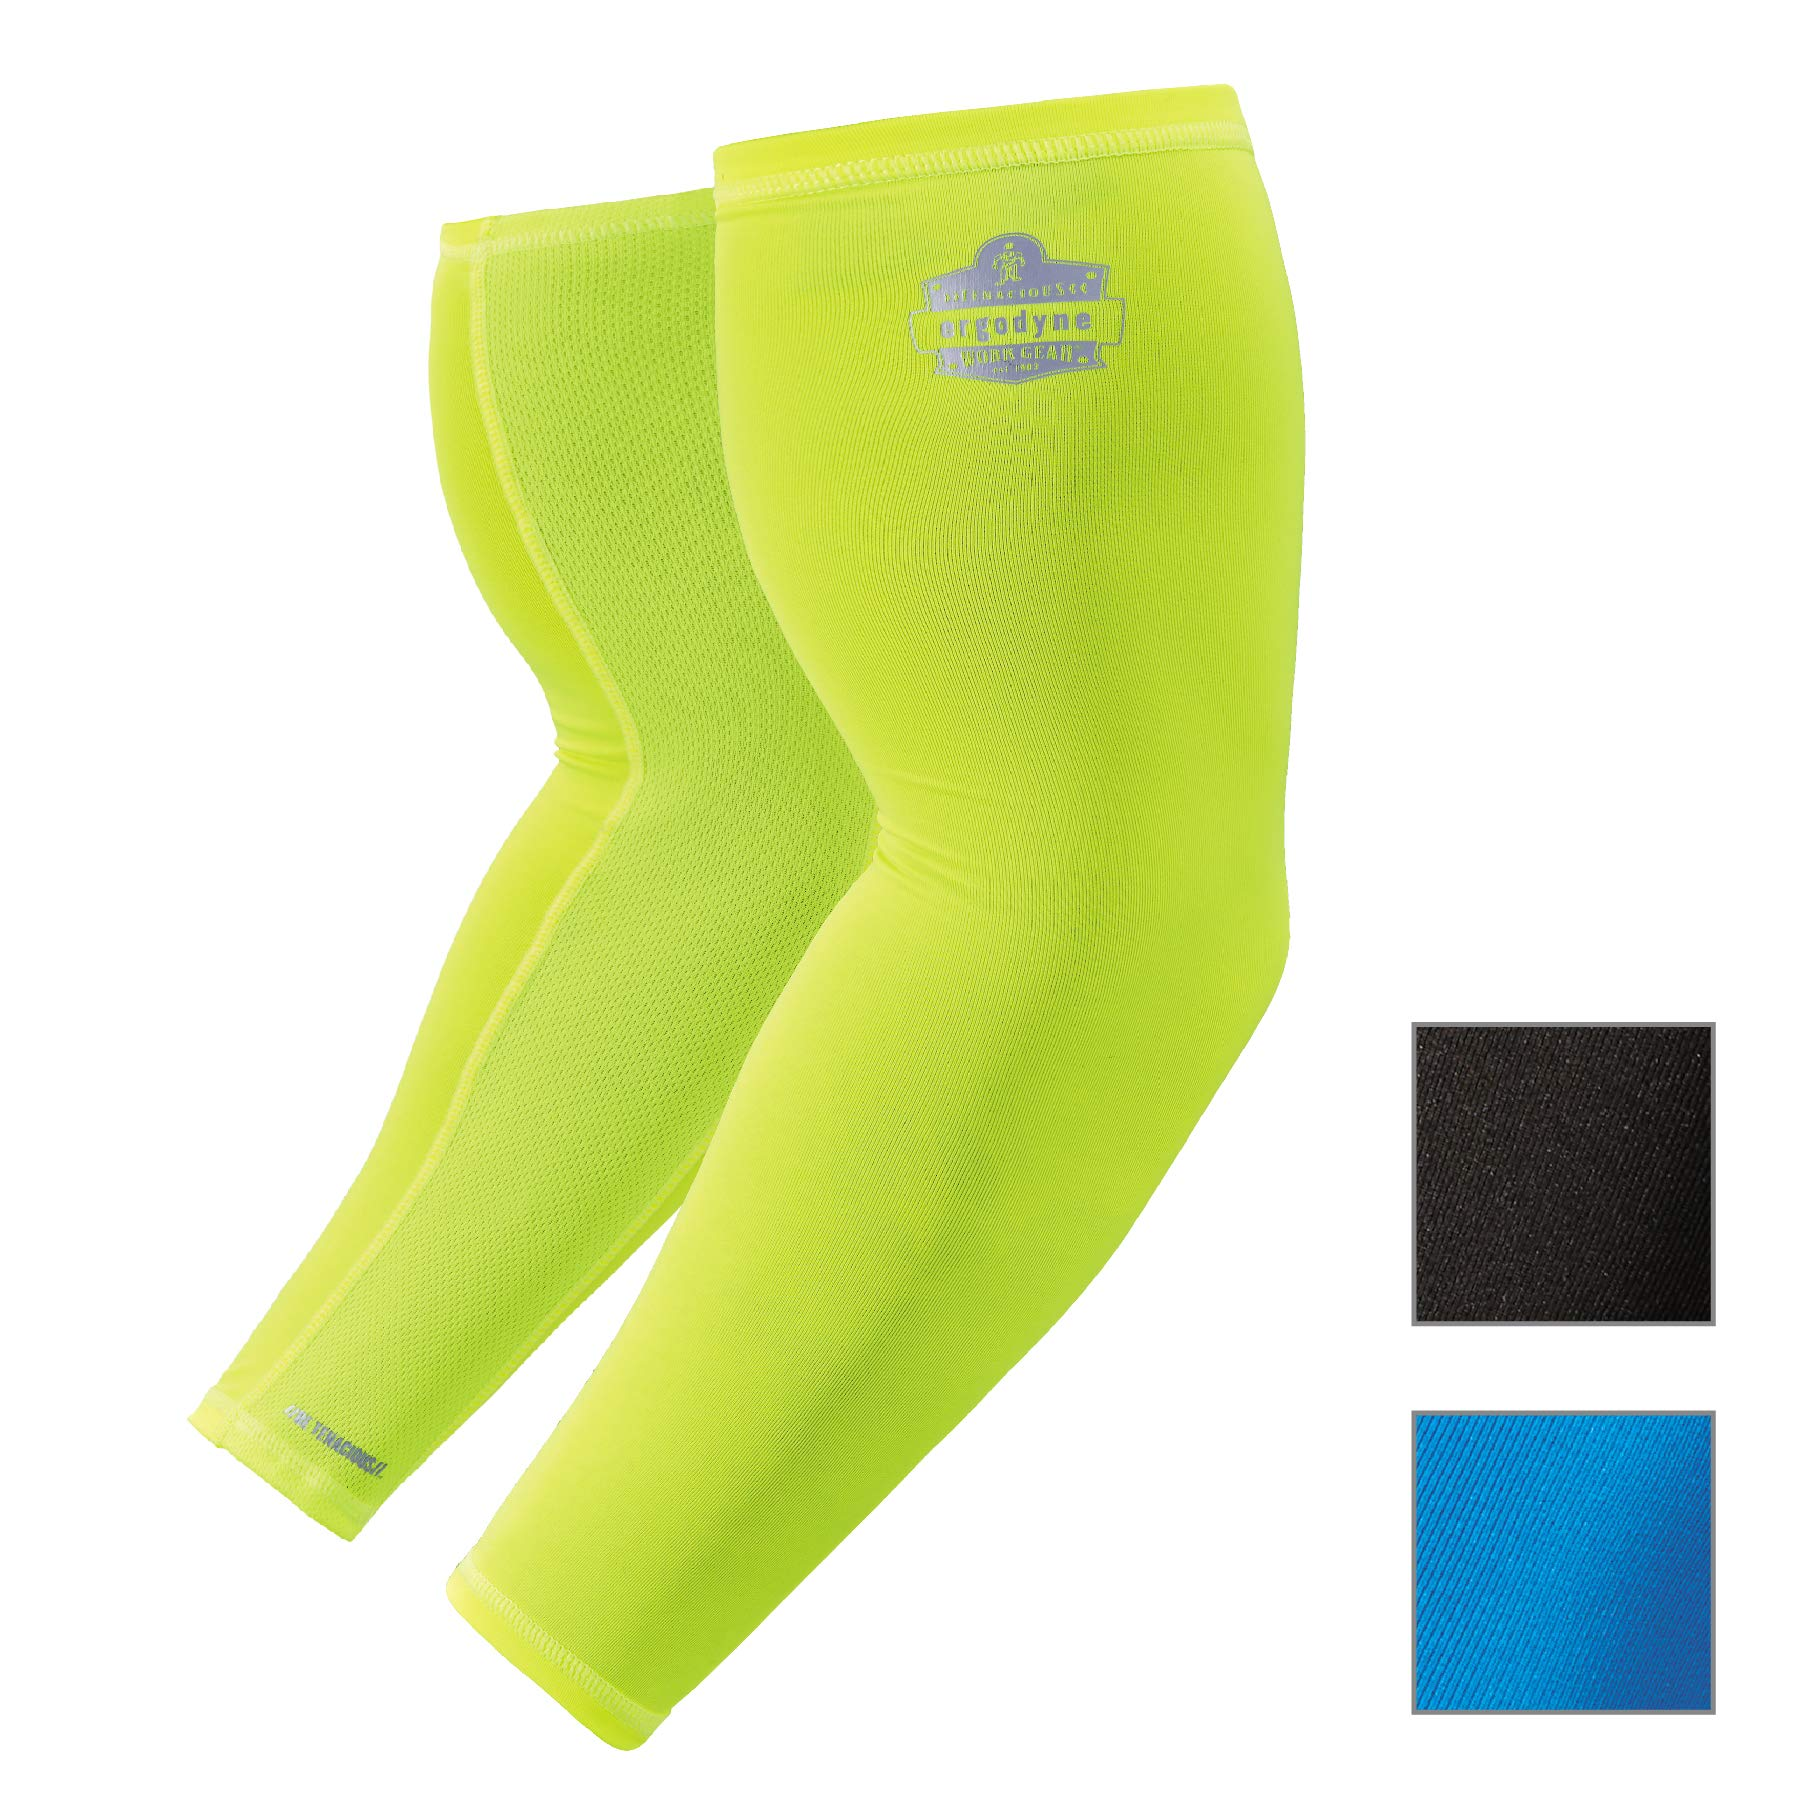 Cooling Arm Sleeves, Sized for Men &Women, UPF 50+ Sun Protection, Ergodyne Chill Its 6690